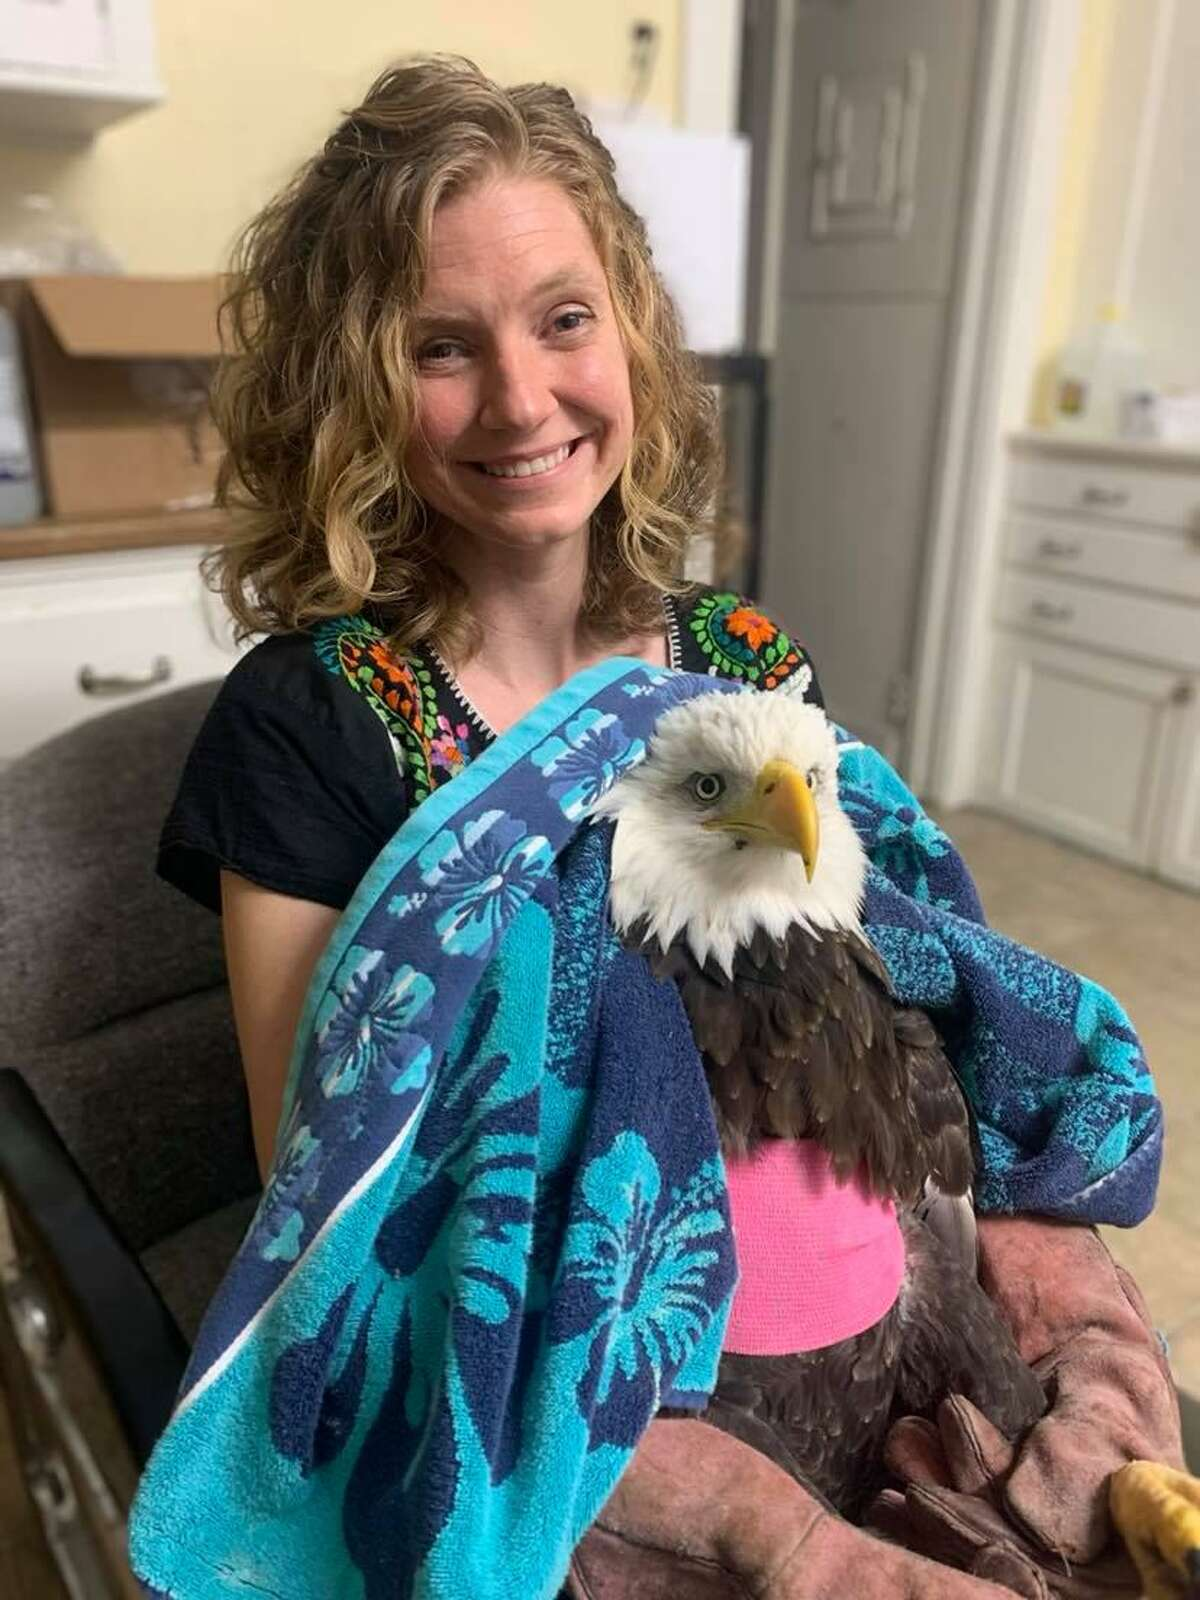 The bald eagle being cared for at the Sharon Audubon Center in Sharon, Conn.